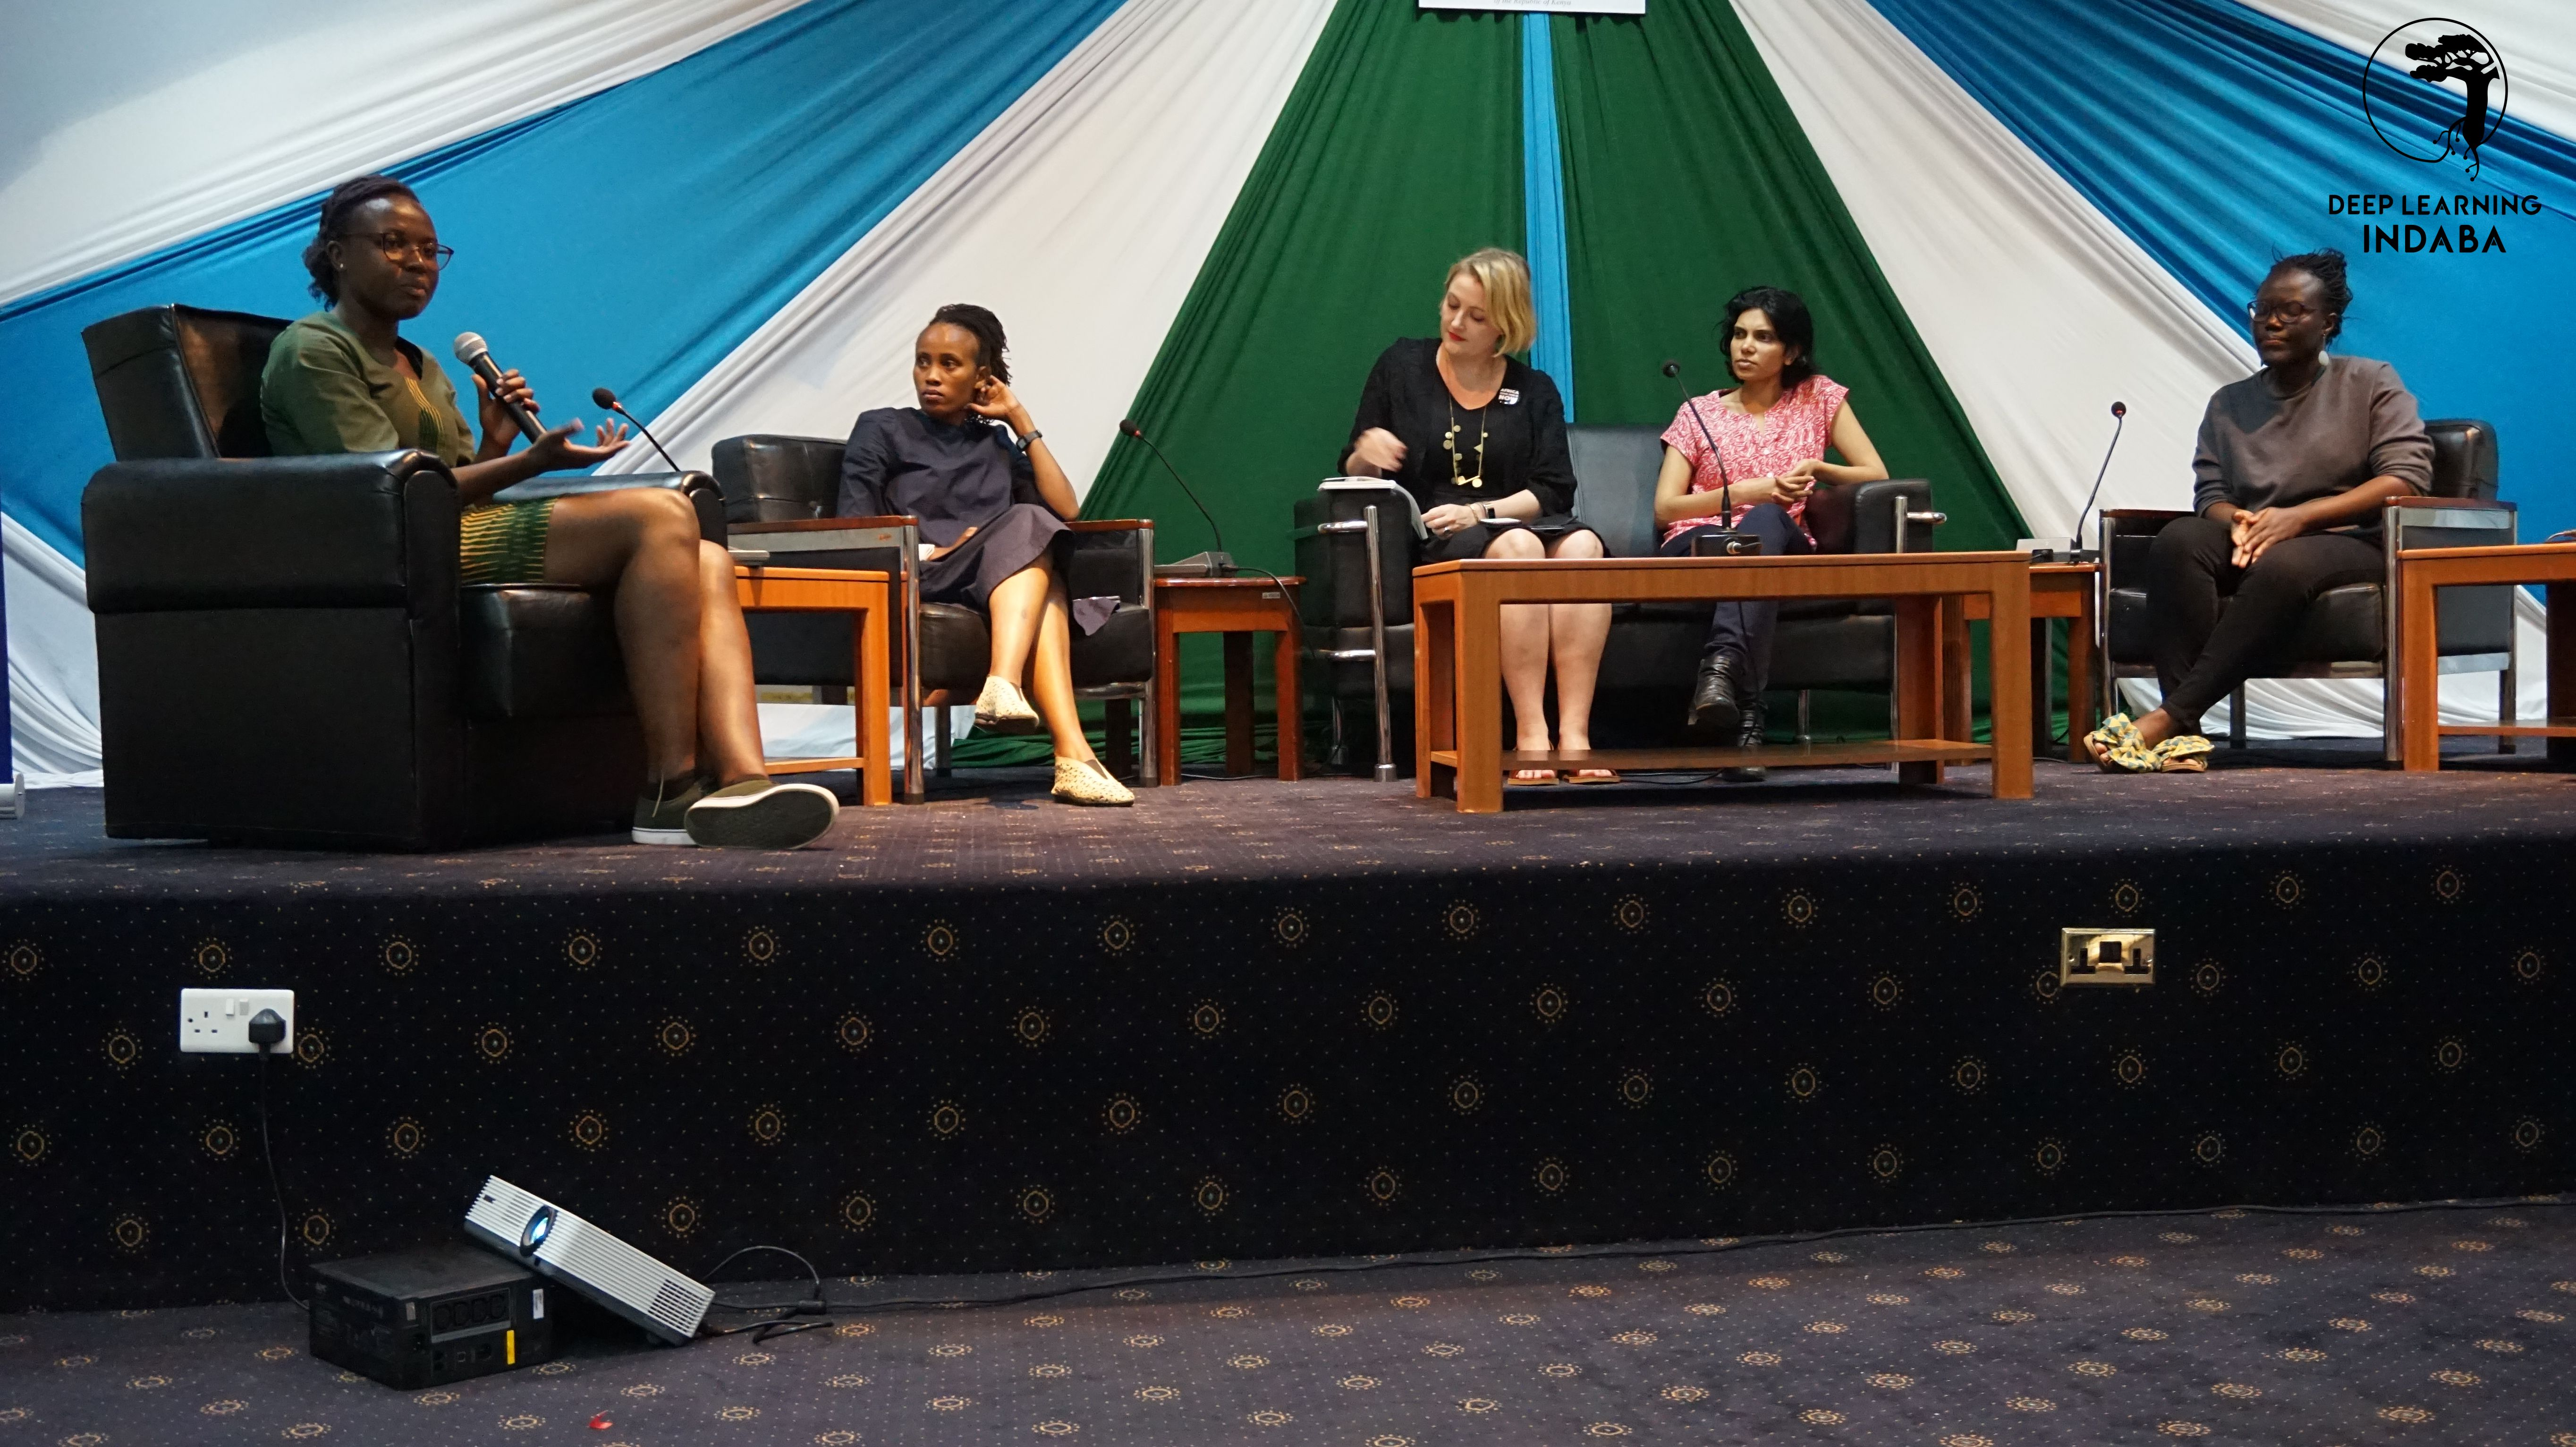 From left to right: Kathleen Siminyu, Grace Mutung'u, Tempest van Schaik, Pashmina Cameron, and Adji Dieng speak about their professional journeys and share advice with attendees during a panel on women in AI during Deep Learning Indaba 2019. Photo credit: Raesetje Sefala and Deep Learning Indaba